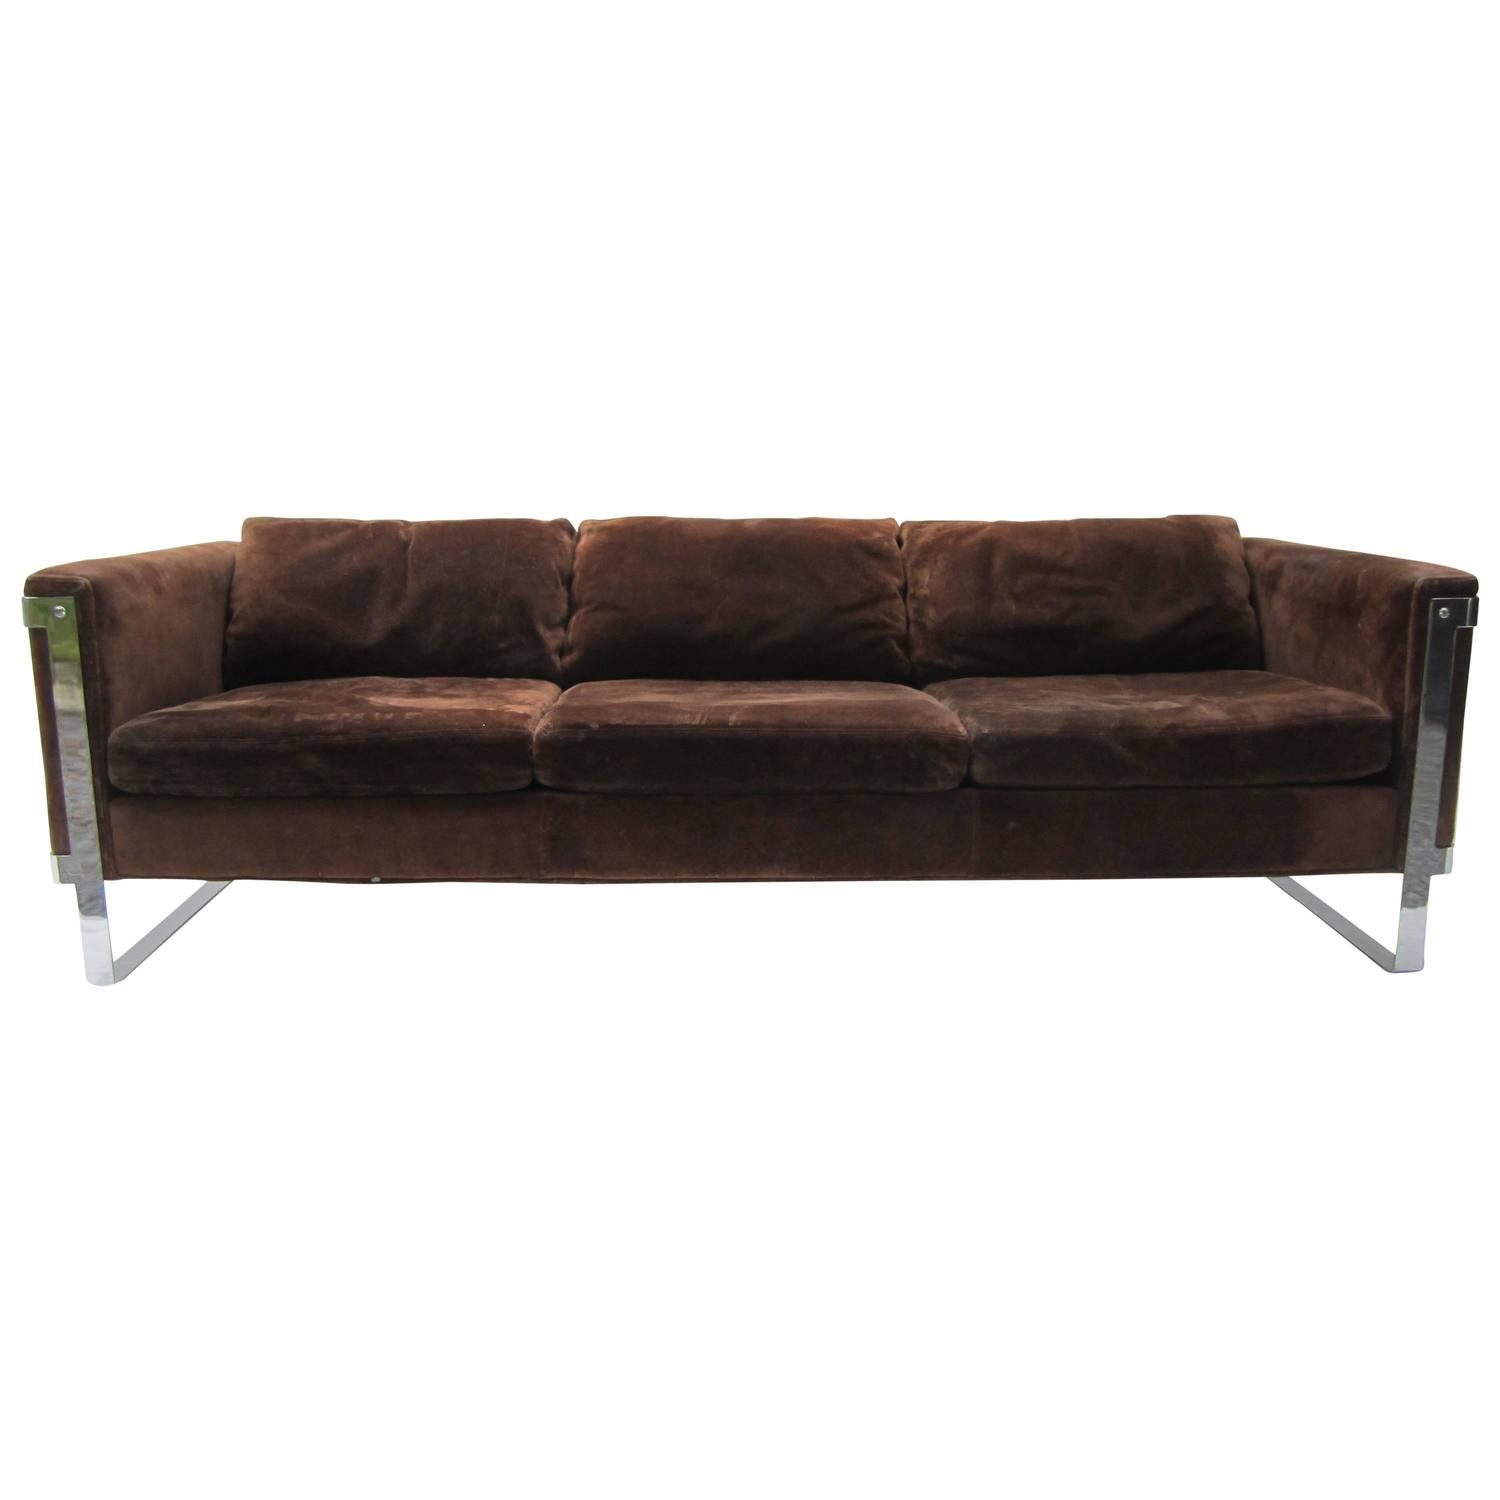 Milo baughman chrome and suede sofa for sale at 1stdibs for Suede couches for sale